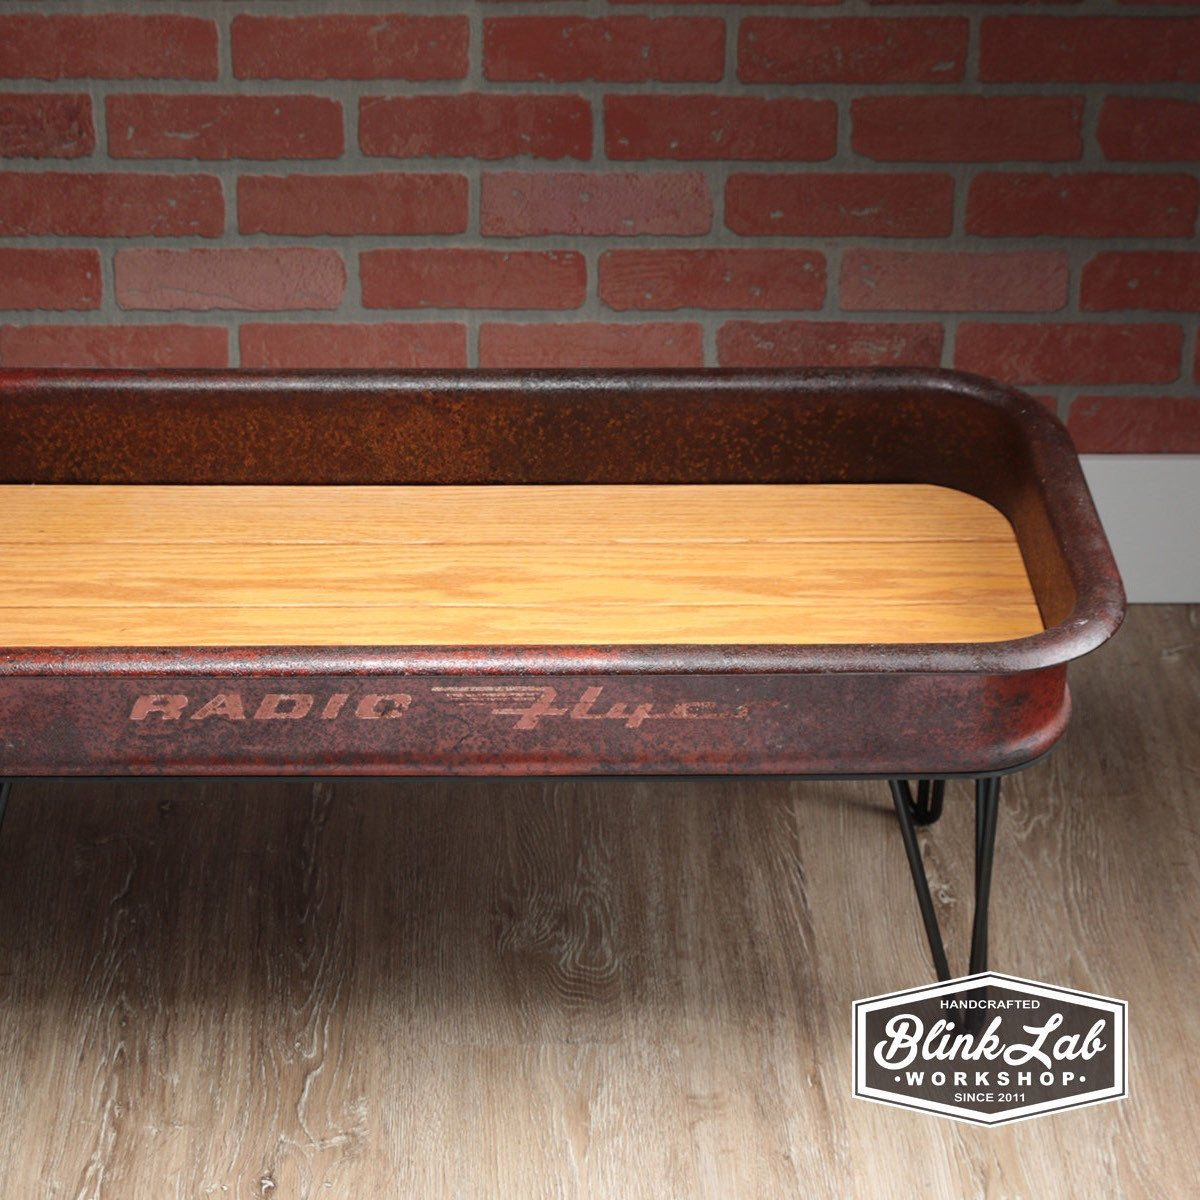 Newest addition to the shop a repurposed Radio Flyer wagon coffee